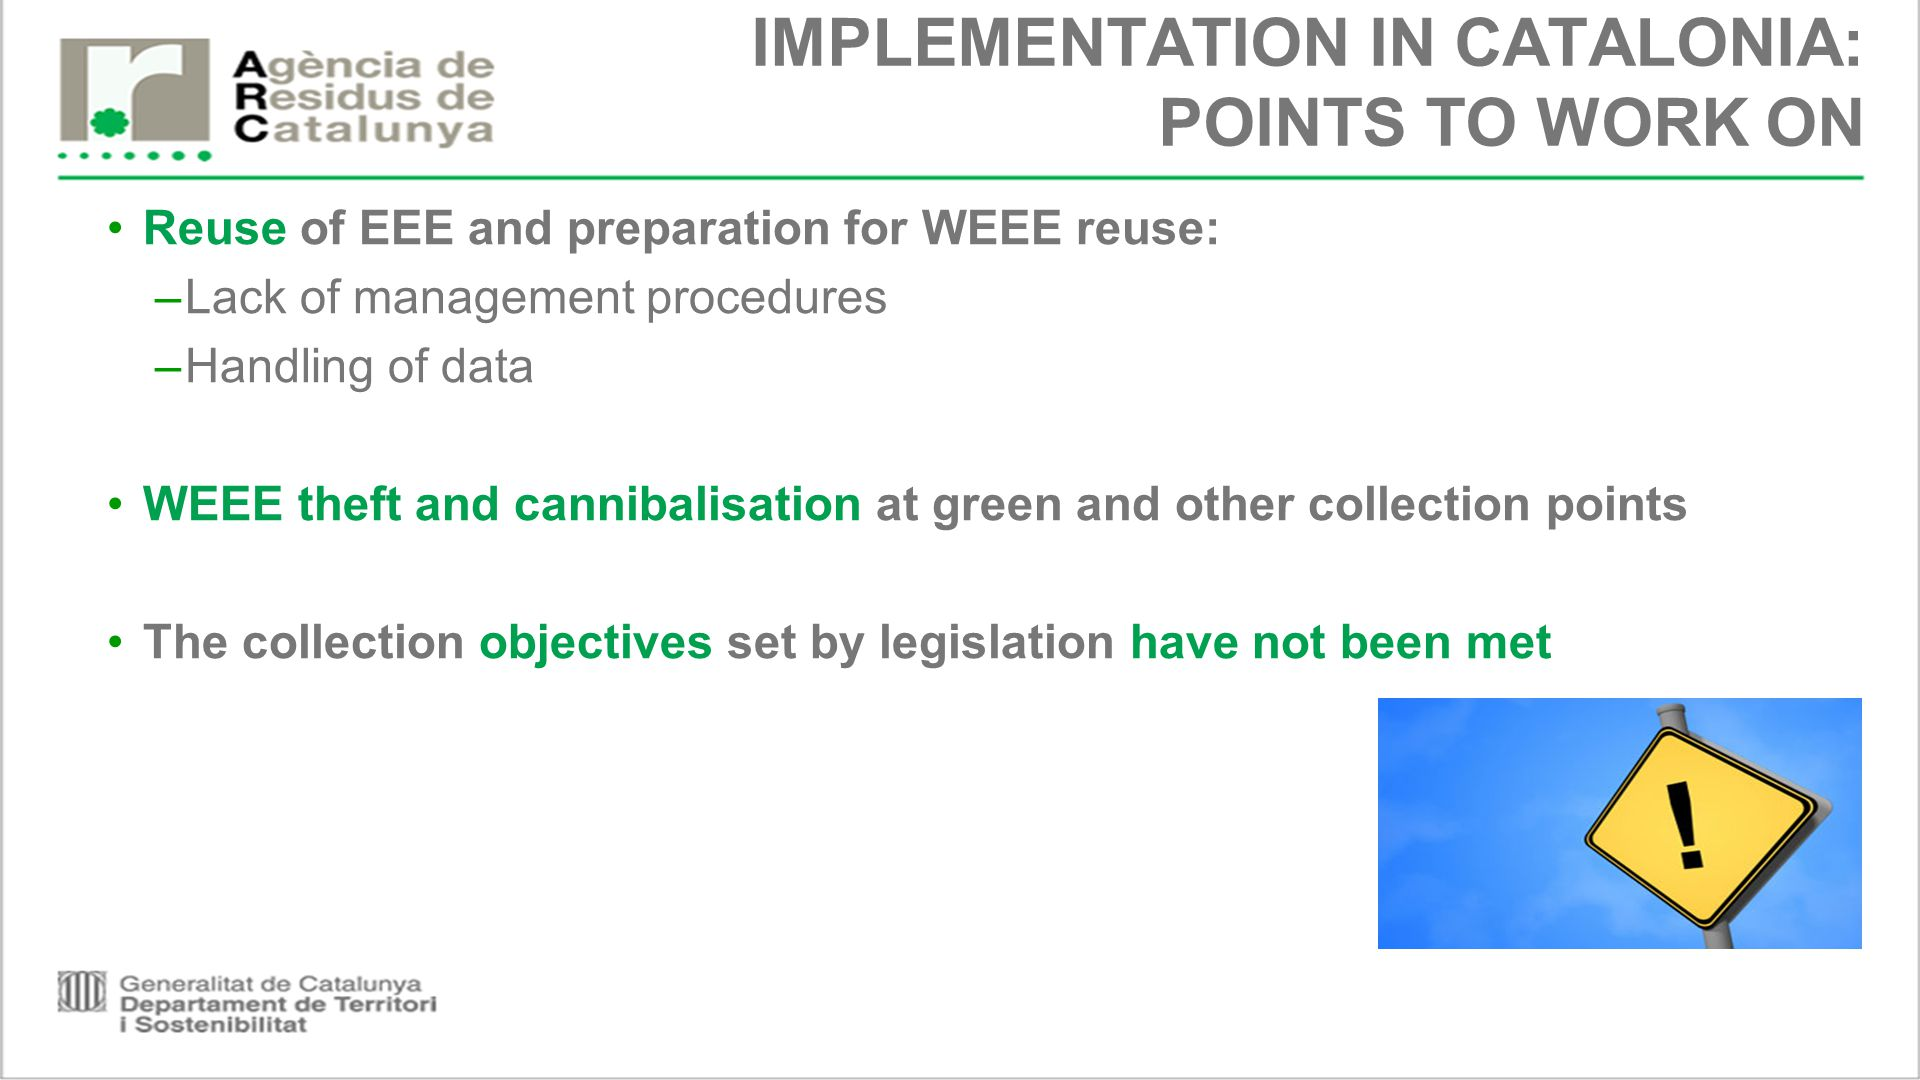 IMPLEMENTATION IN CATALONIA: POINTS TO WORK ON Reuse of EEE and preparation for WEEE reuse: –Lack of management procedures –Handling of data WEEE theft and cannibalisation at green and other collection points The collection objectives set by legislation have not been met